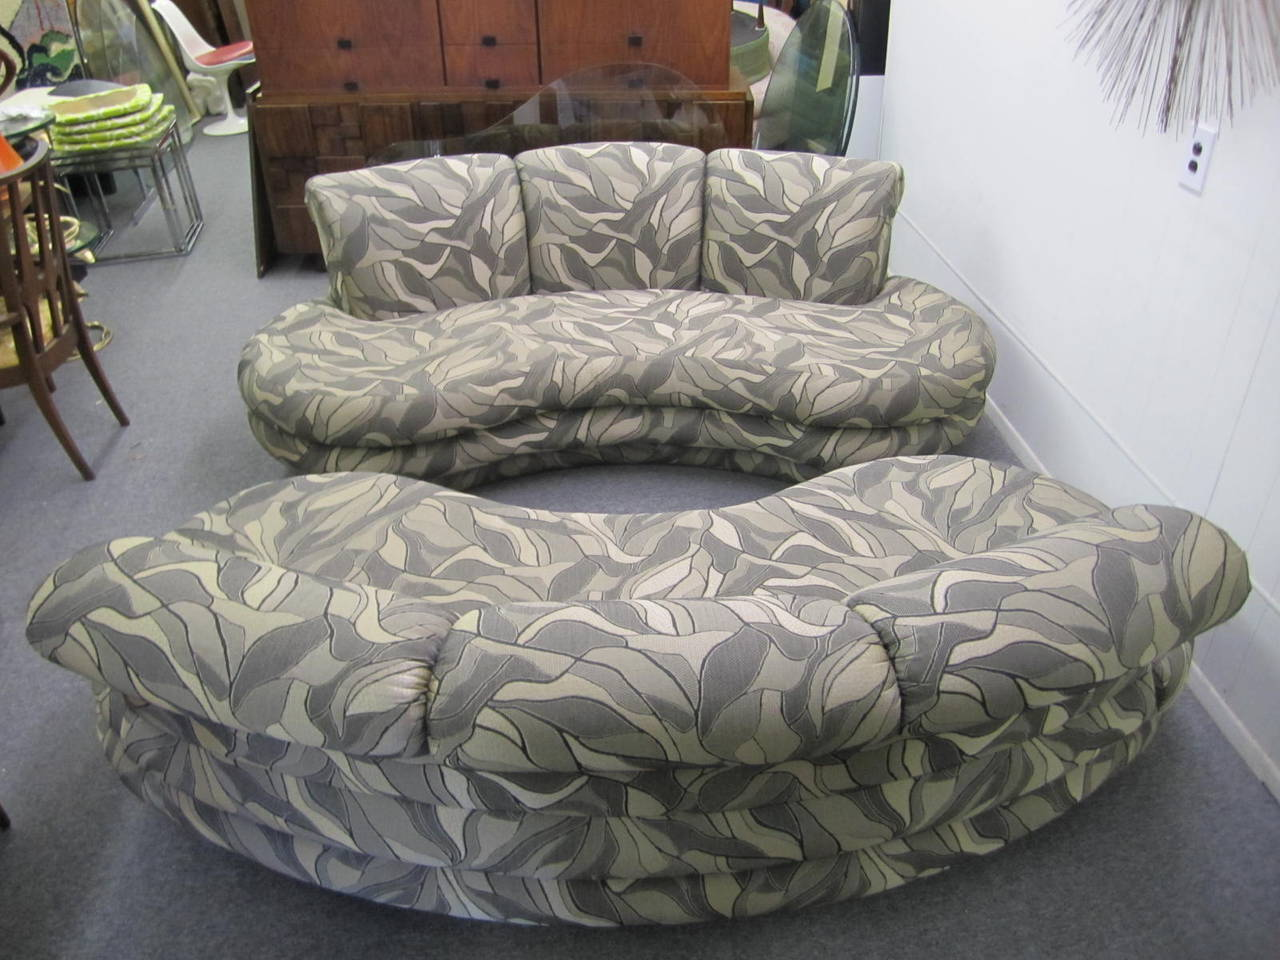 Fabulous Pair Of Kidney Shaped Cloud Sofas Mid Century By Adrian Pearsall  For Comfort